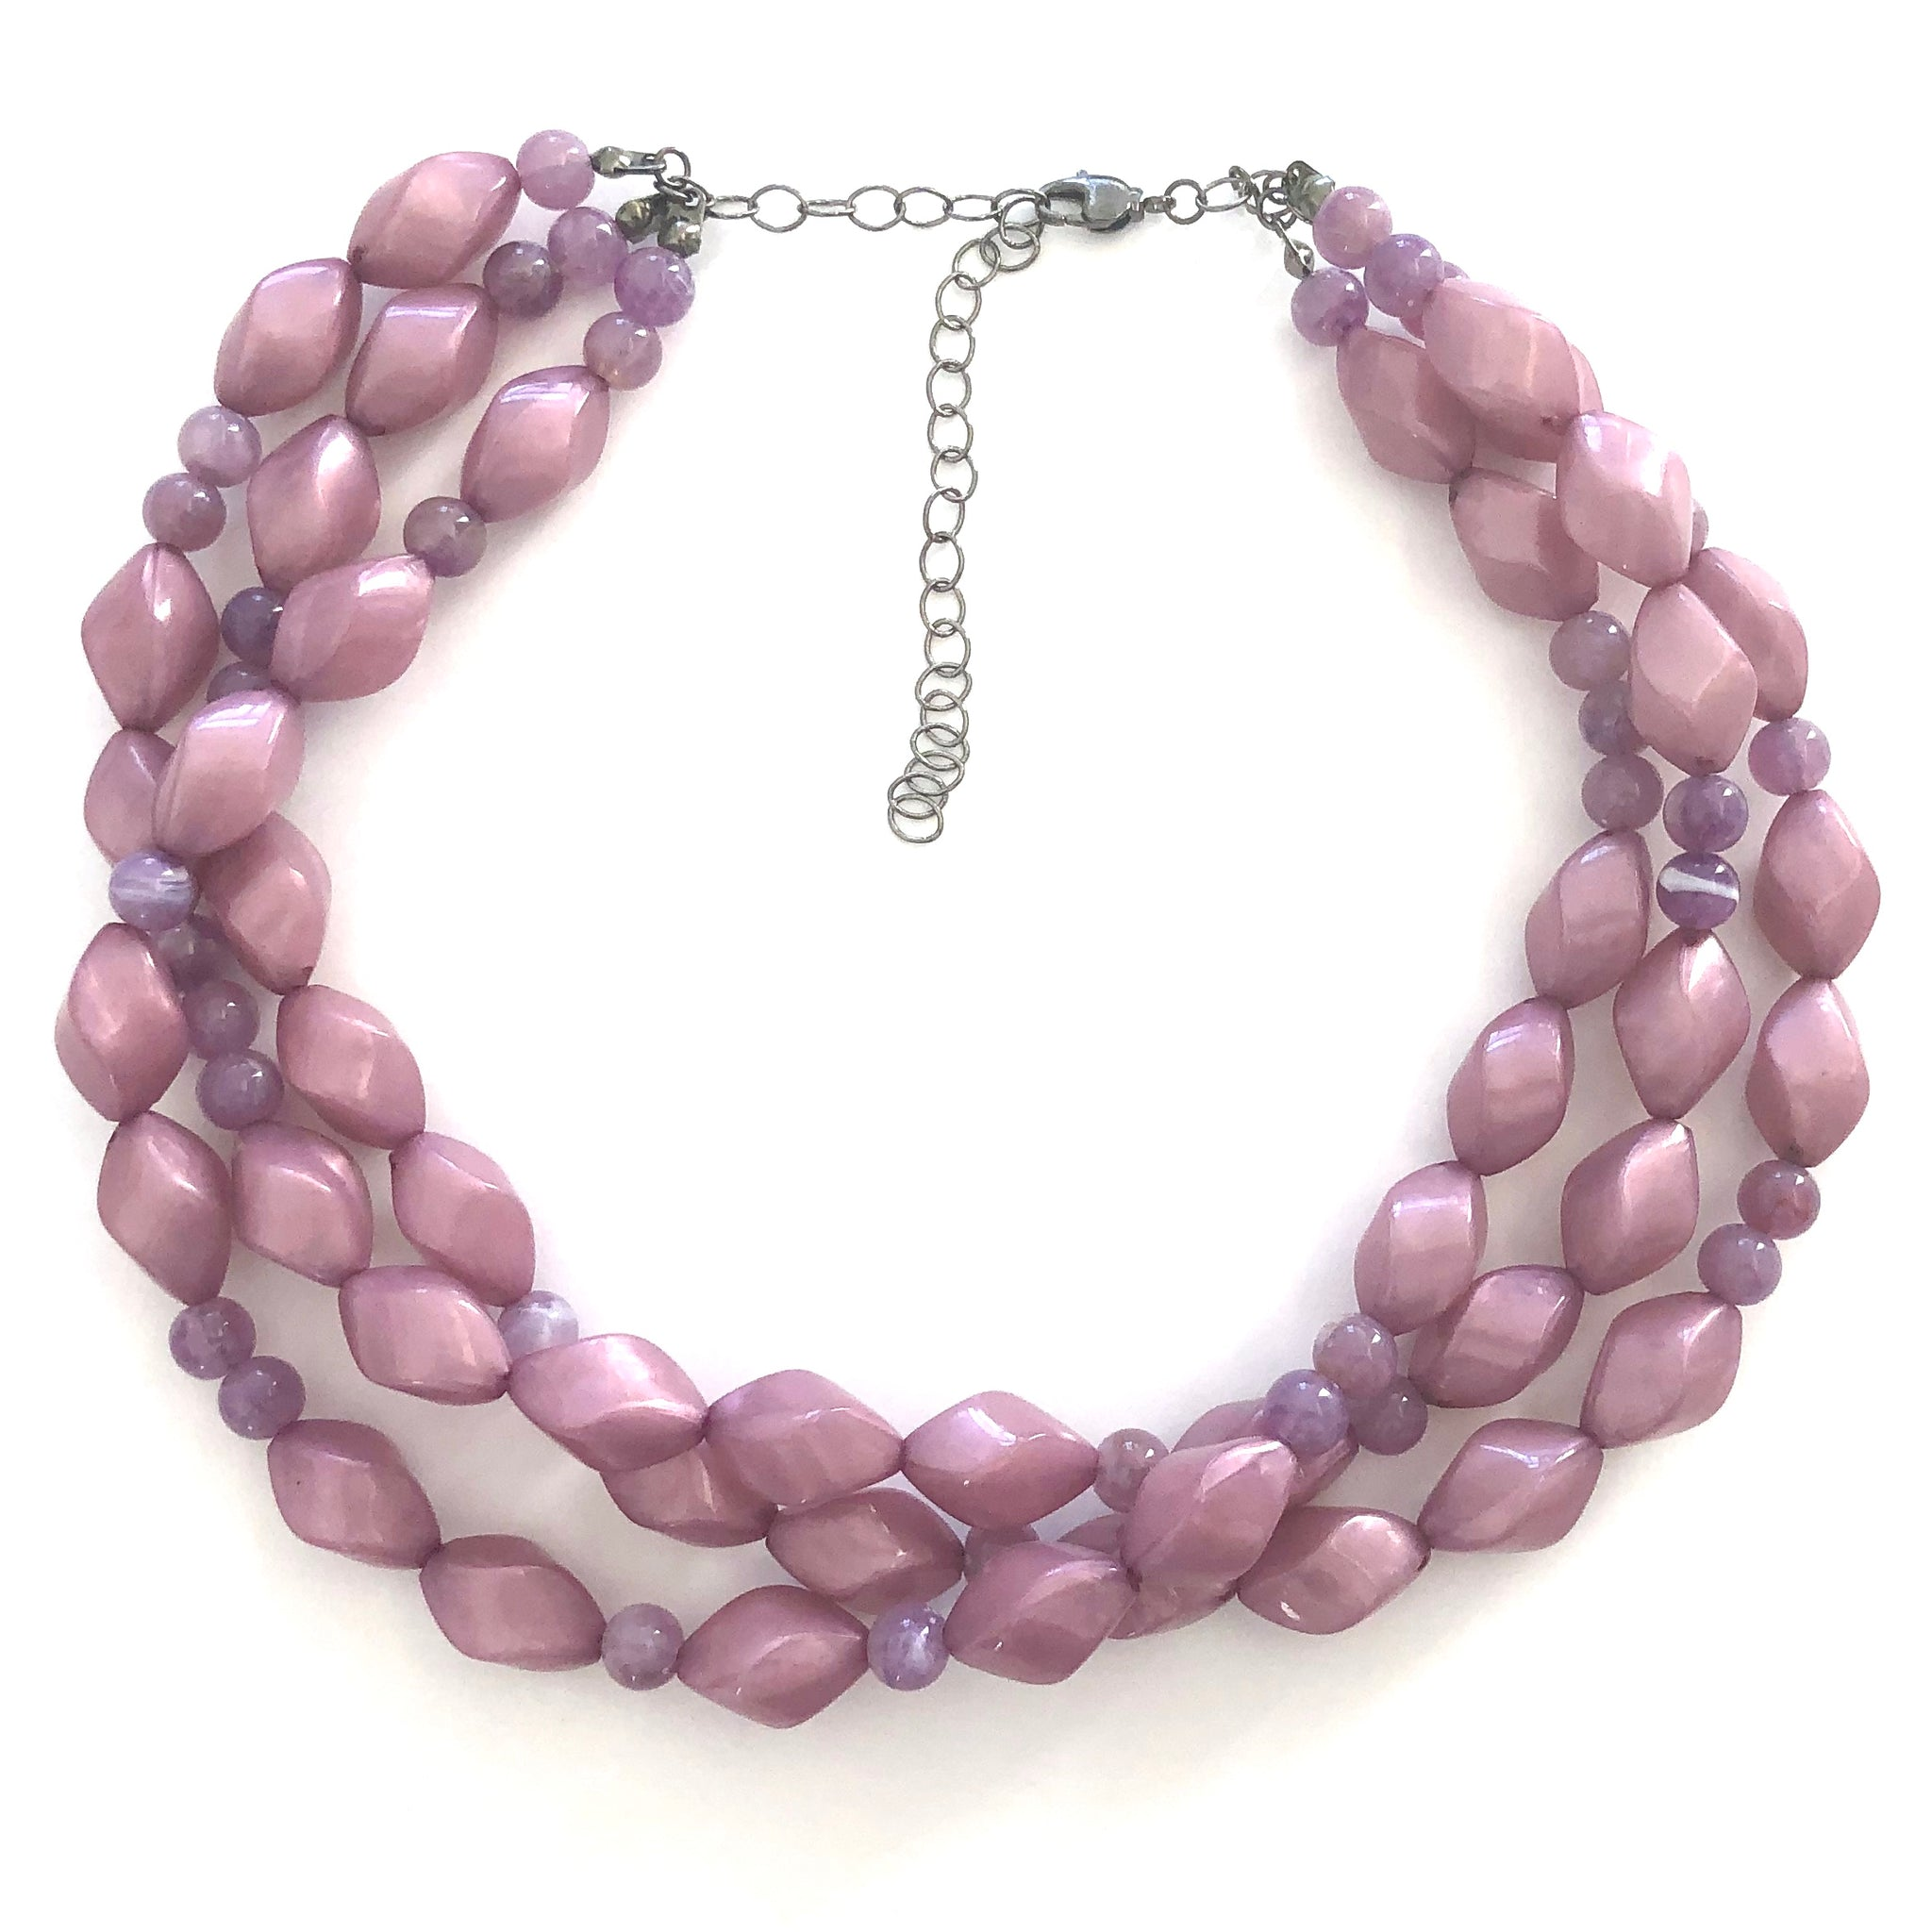 Lilac Pearlized with Mauve Twist Beaded Morgan Necklace